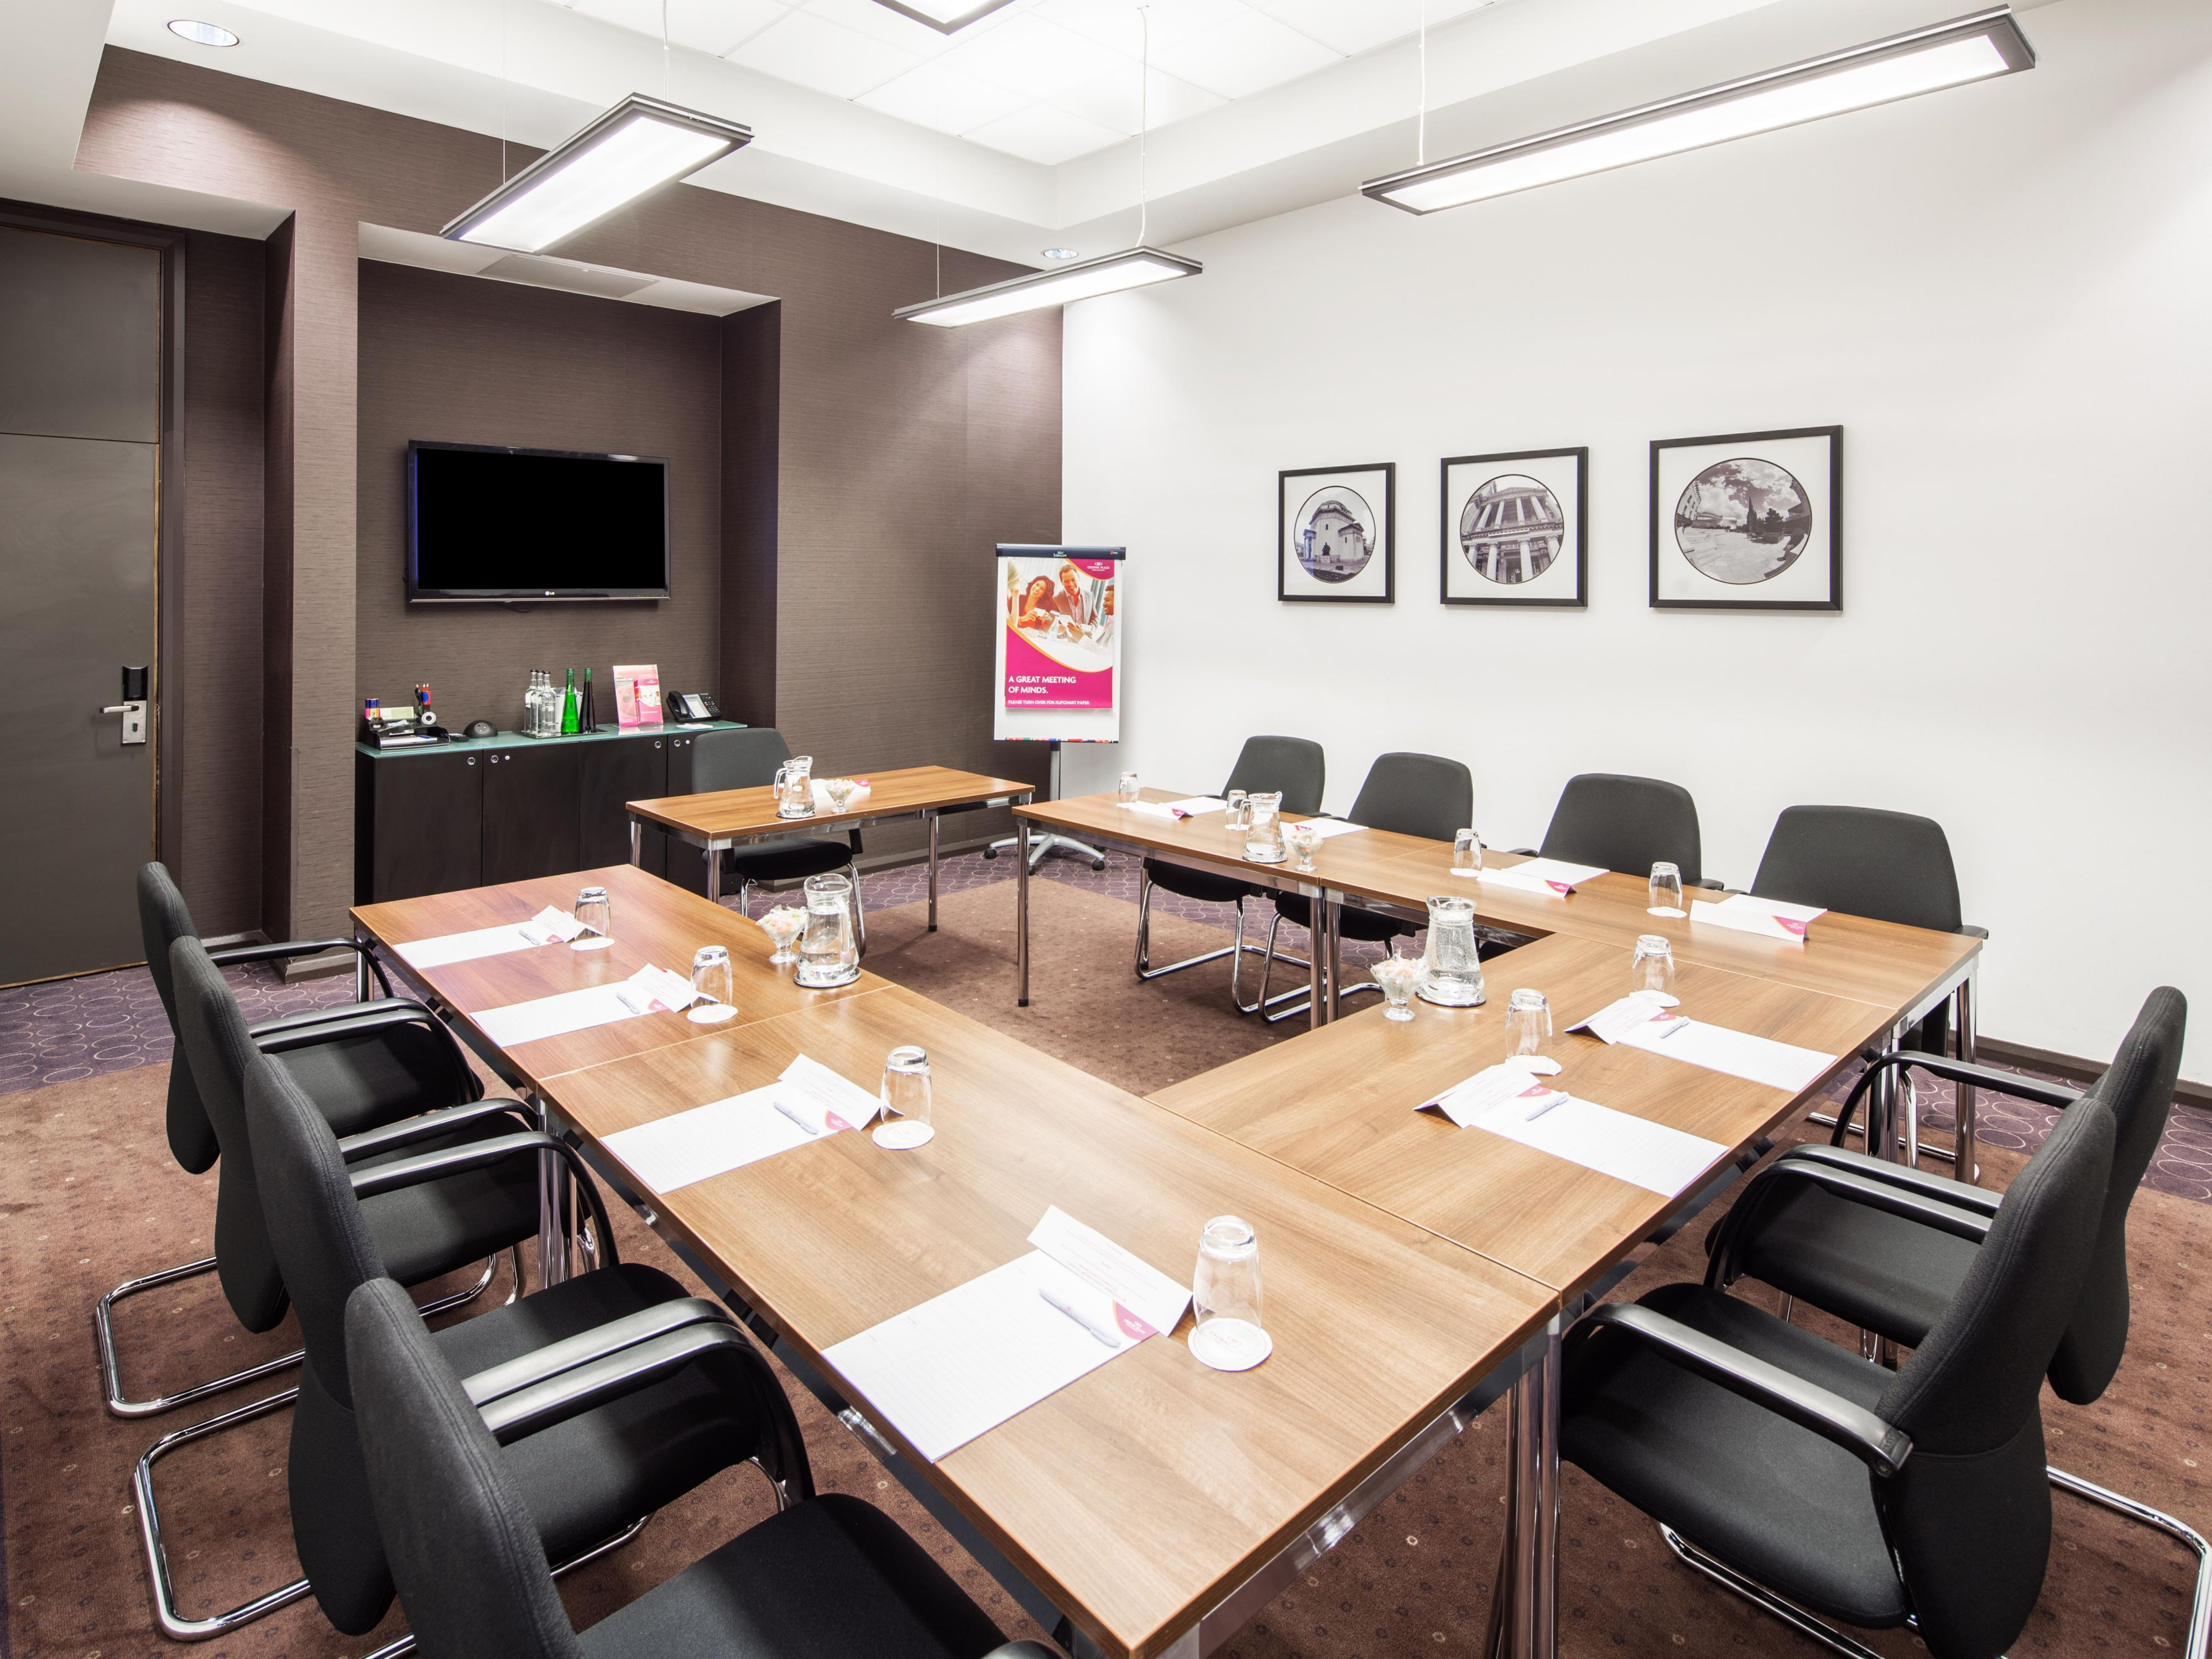 CONFERENCE ROOM AT THE CITY CENTRE